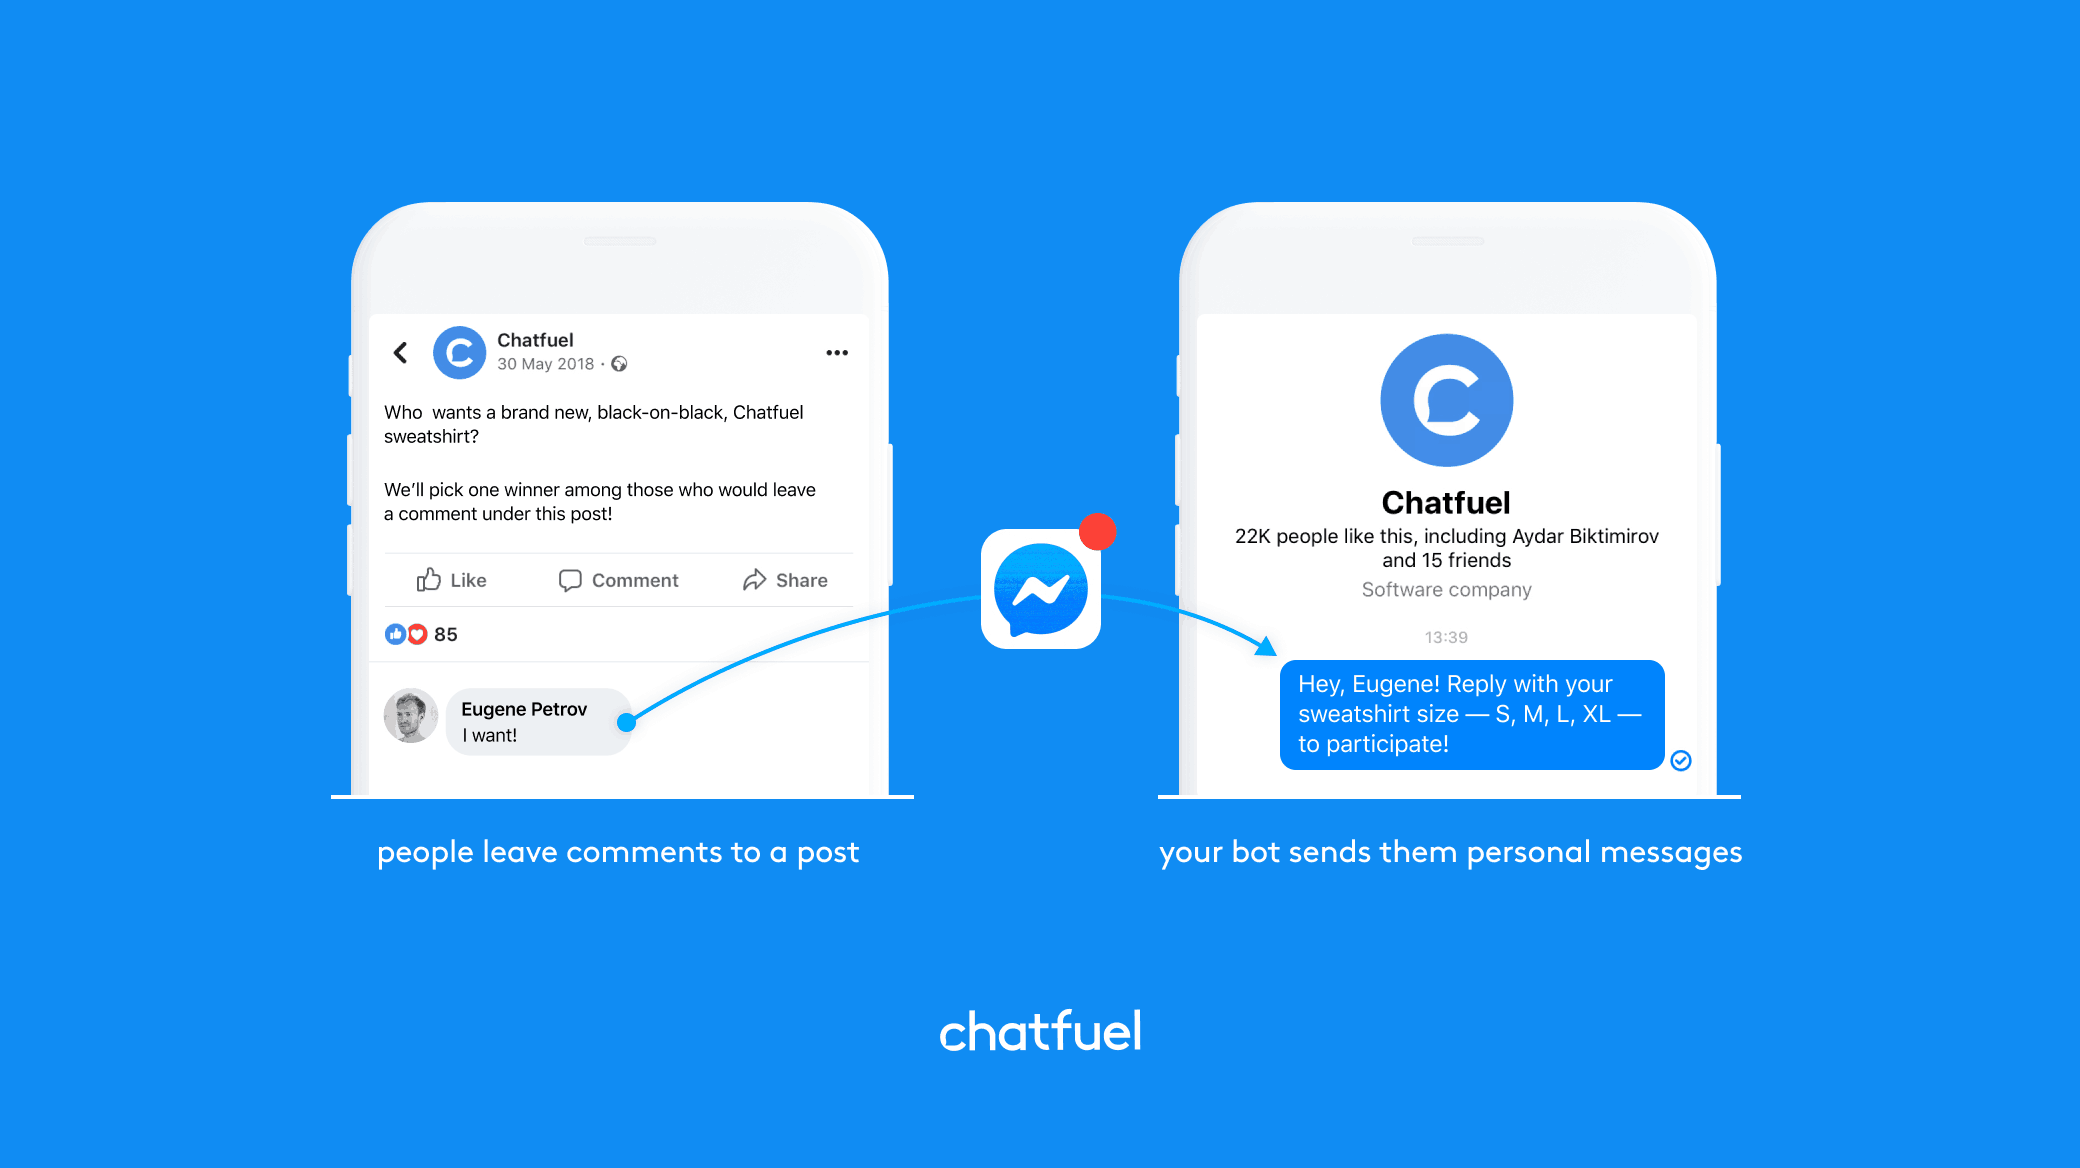 Chatfuelis a free tool that helps you build a chatbot